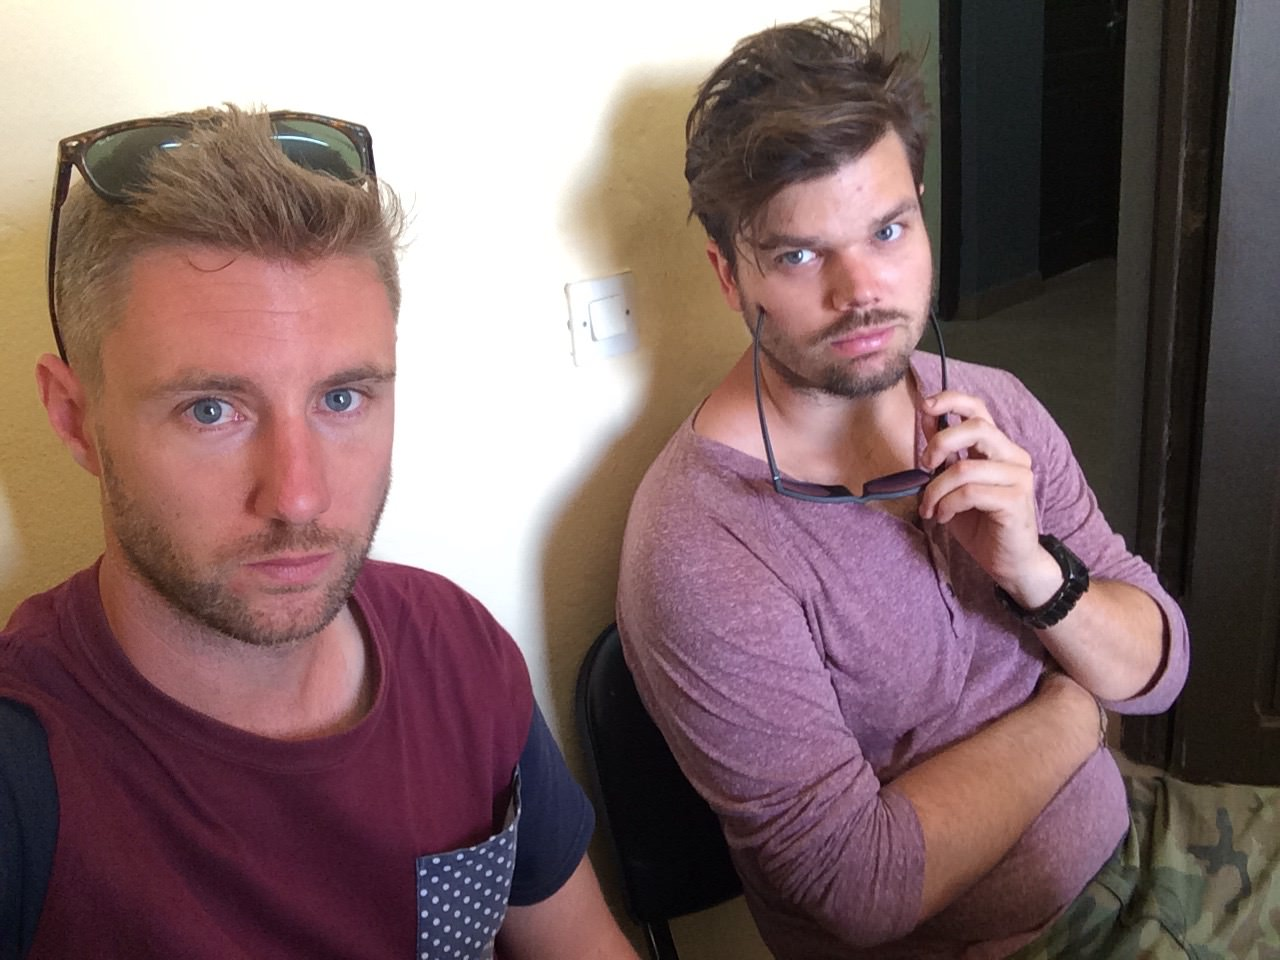 Waiting in the police station,   time for a quick snap!